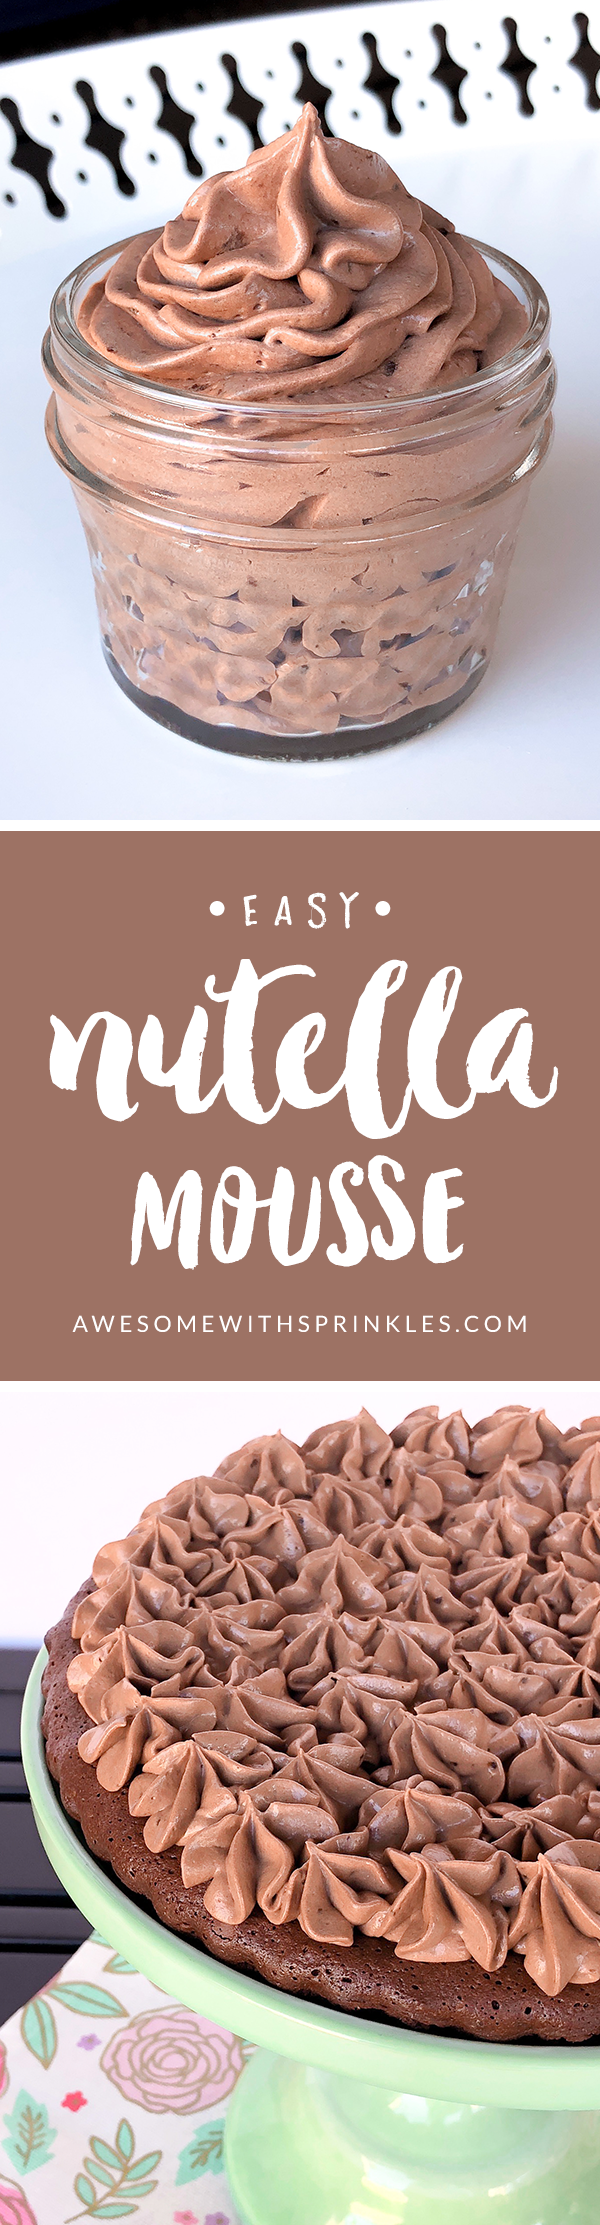 Easy Nutella Mousse | Awesome with Sprinkles